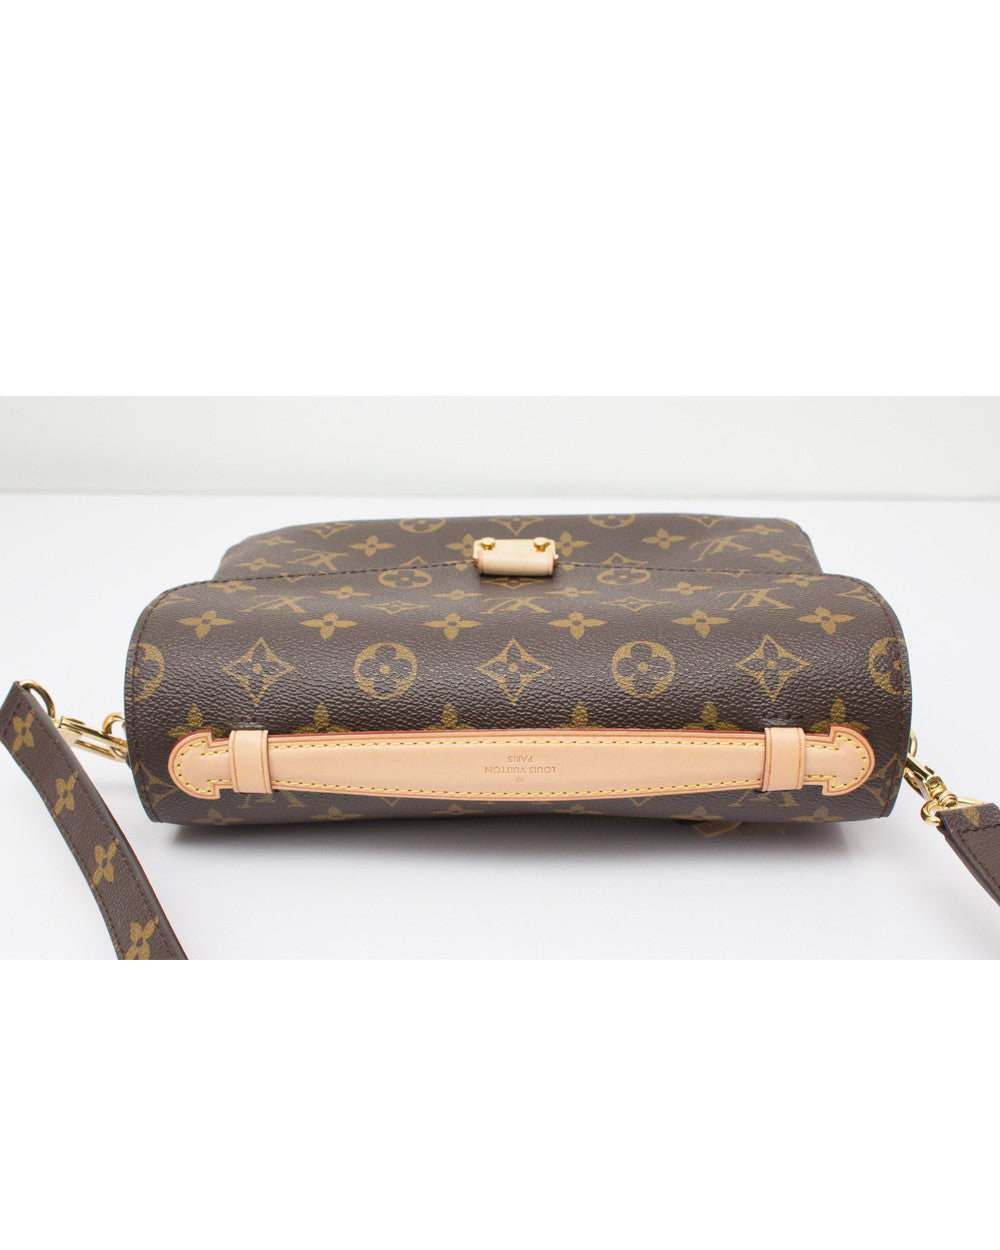 Monogram Pochette Metis Bag